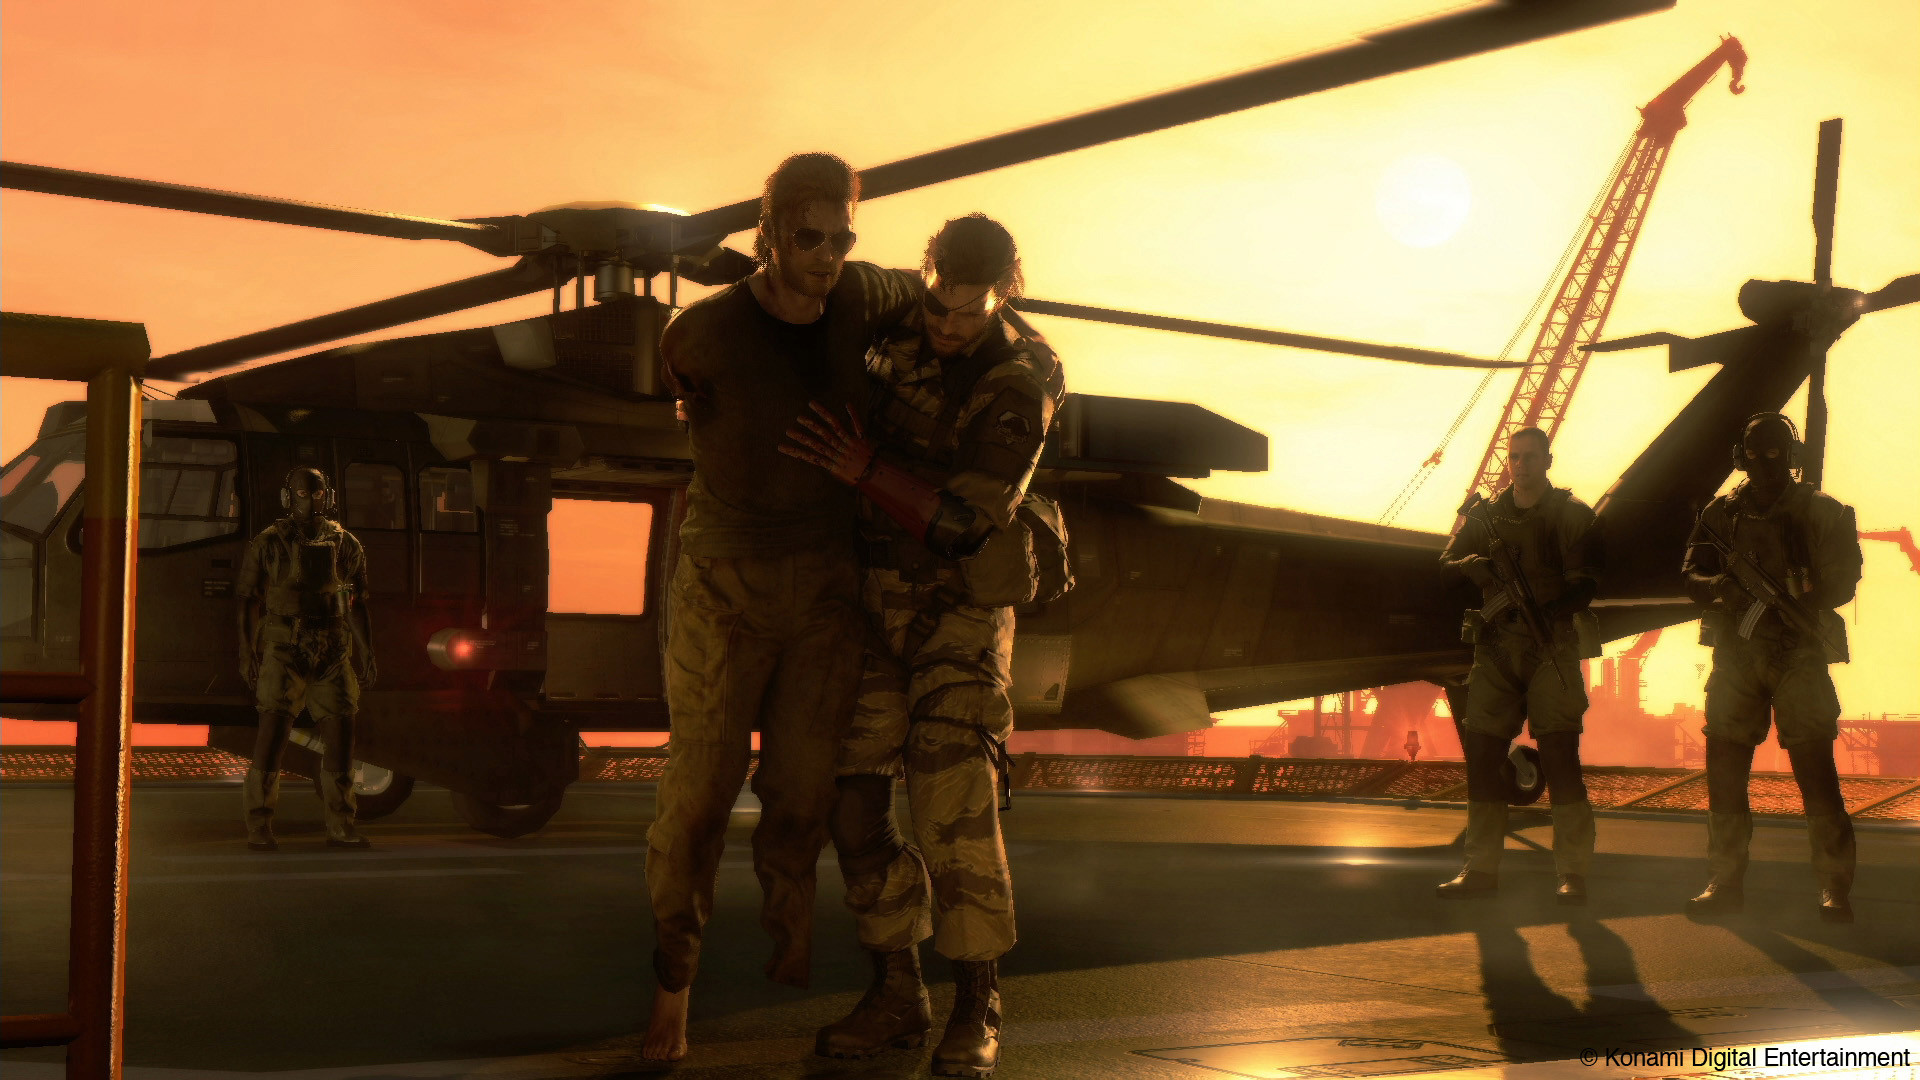 Metal gear solid 5 the phantom pain release date in Melbourne